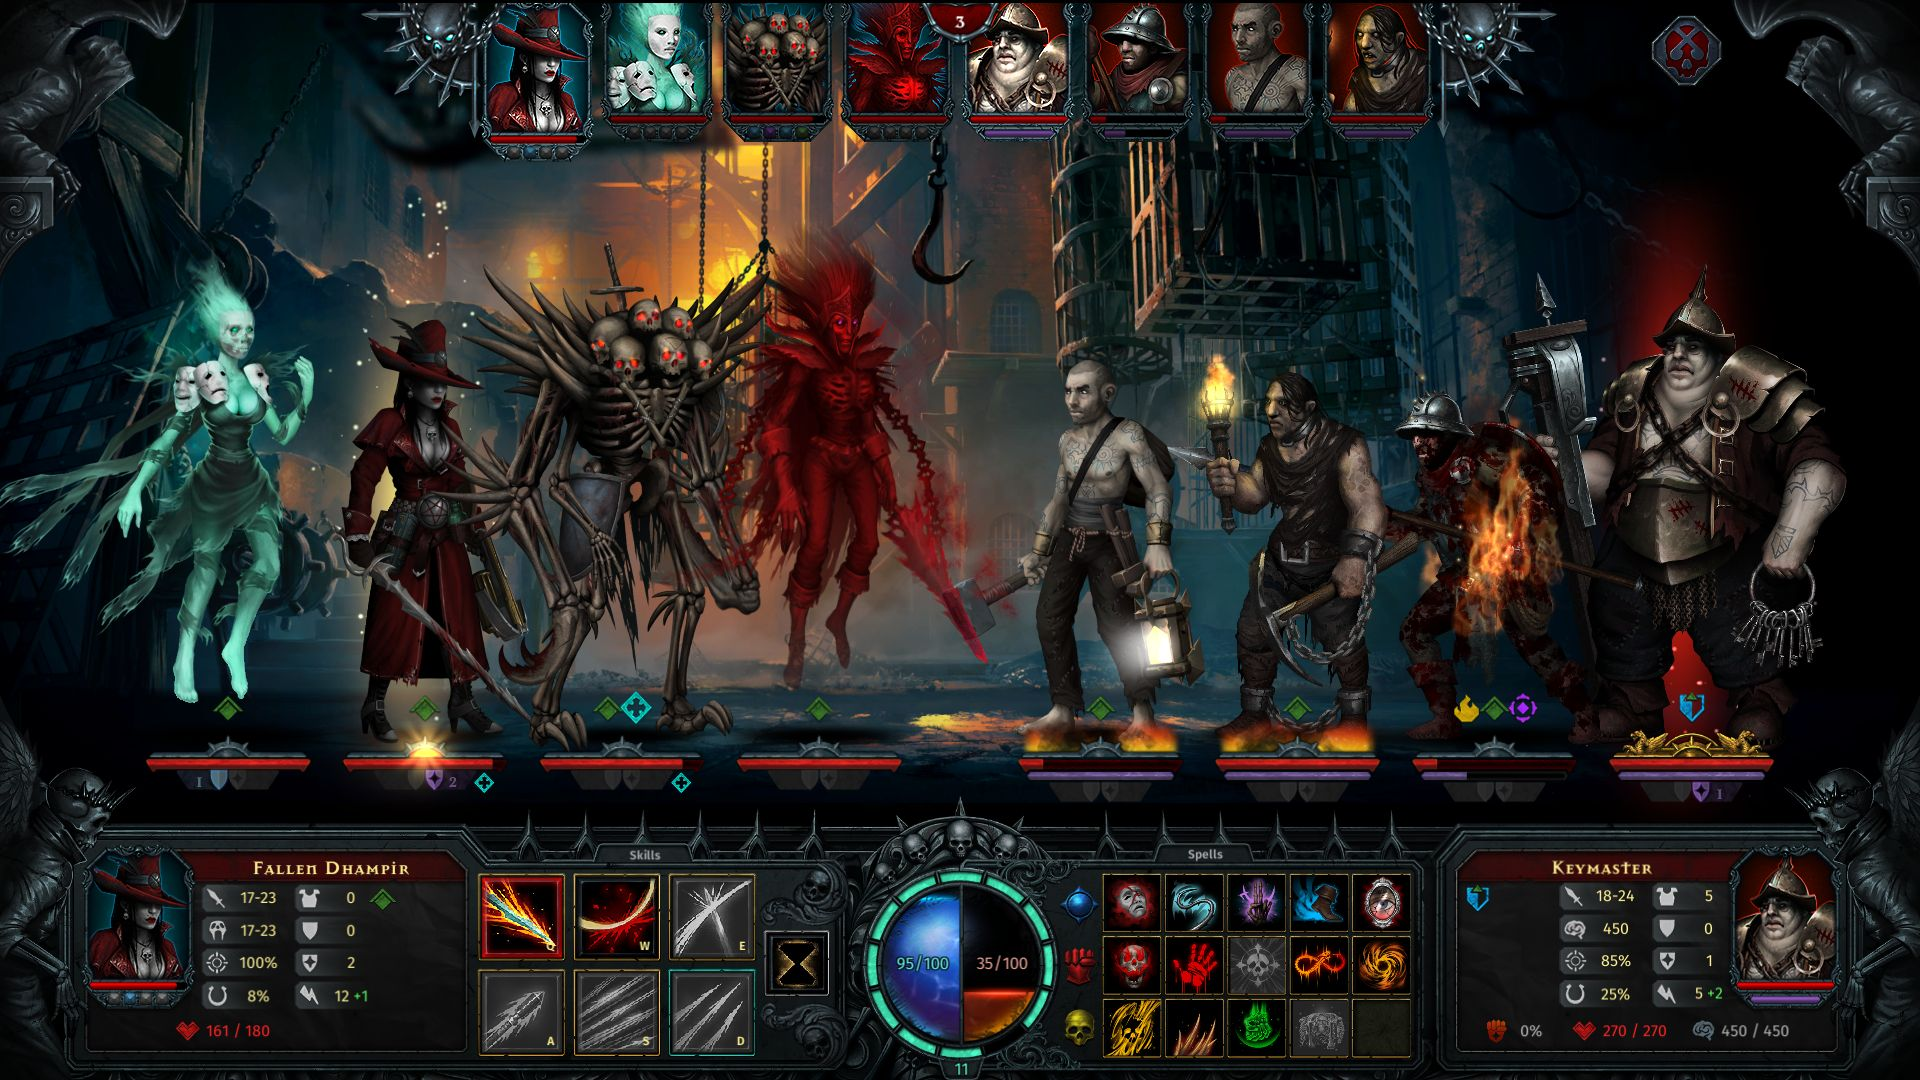 Screenshot from Iratus: Lord of the Dead (6/8)